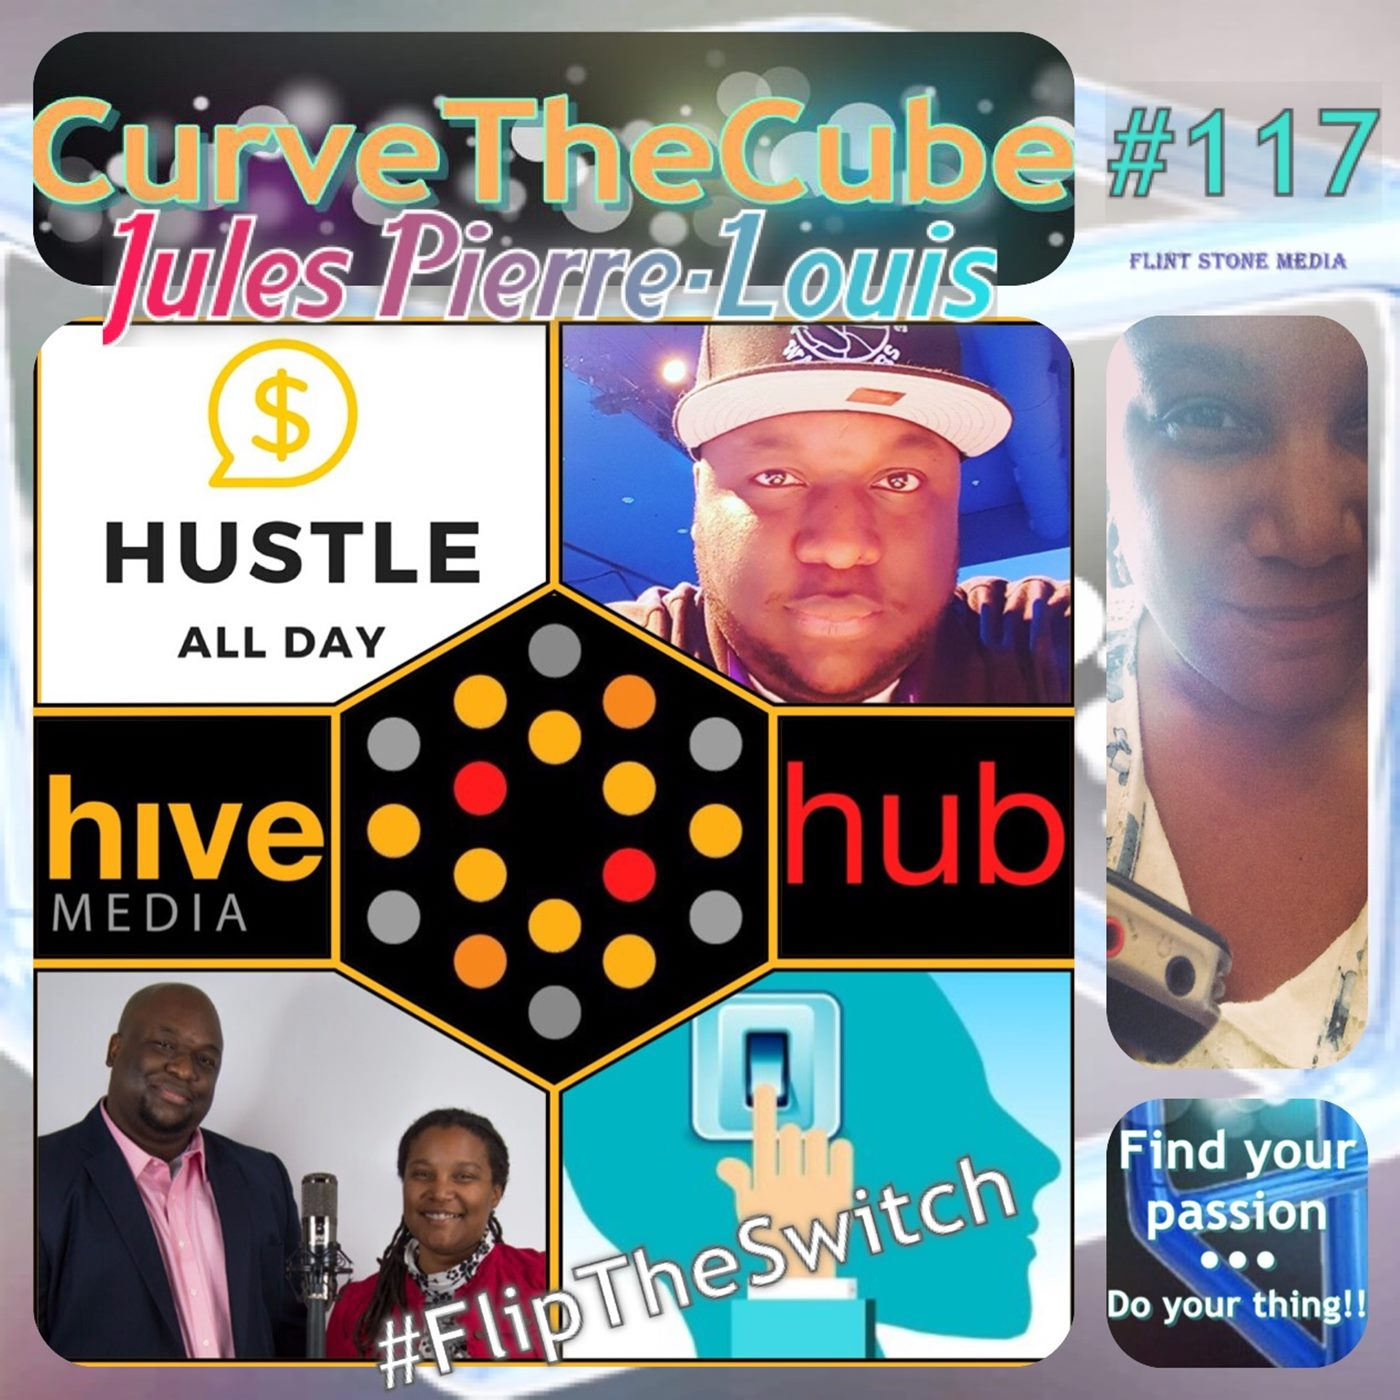 Jules Pierre-Louis of Hive Hube Media and the Hustle All Day Podcast on the Curve the Cube Podcast